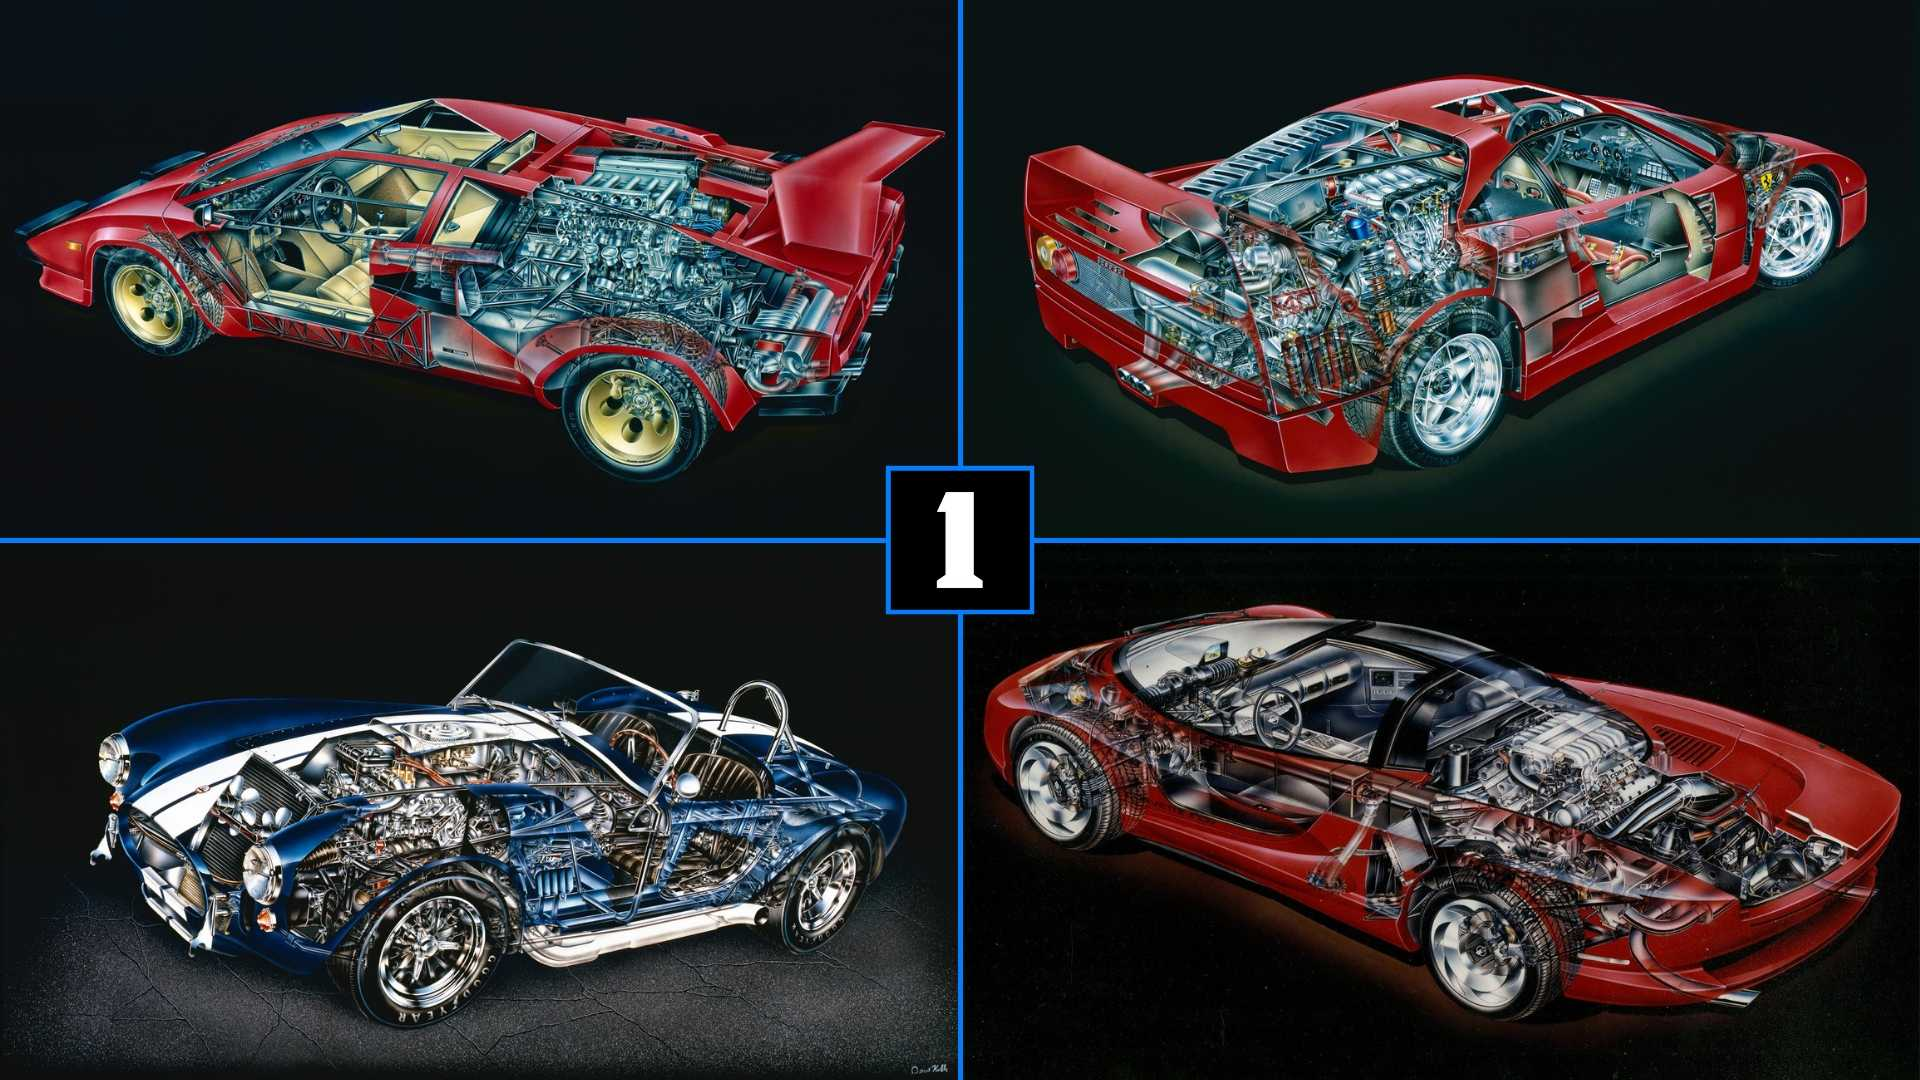 Unwrap 10 Awesome Cars With These Amazing Kimble Cutaways